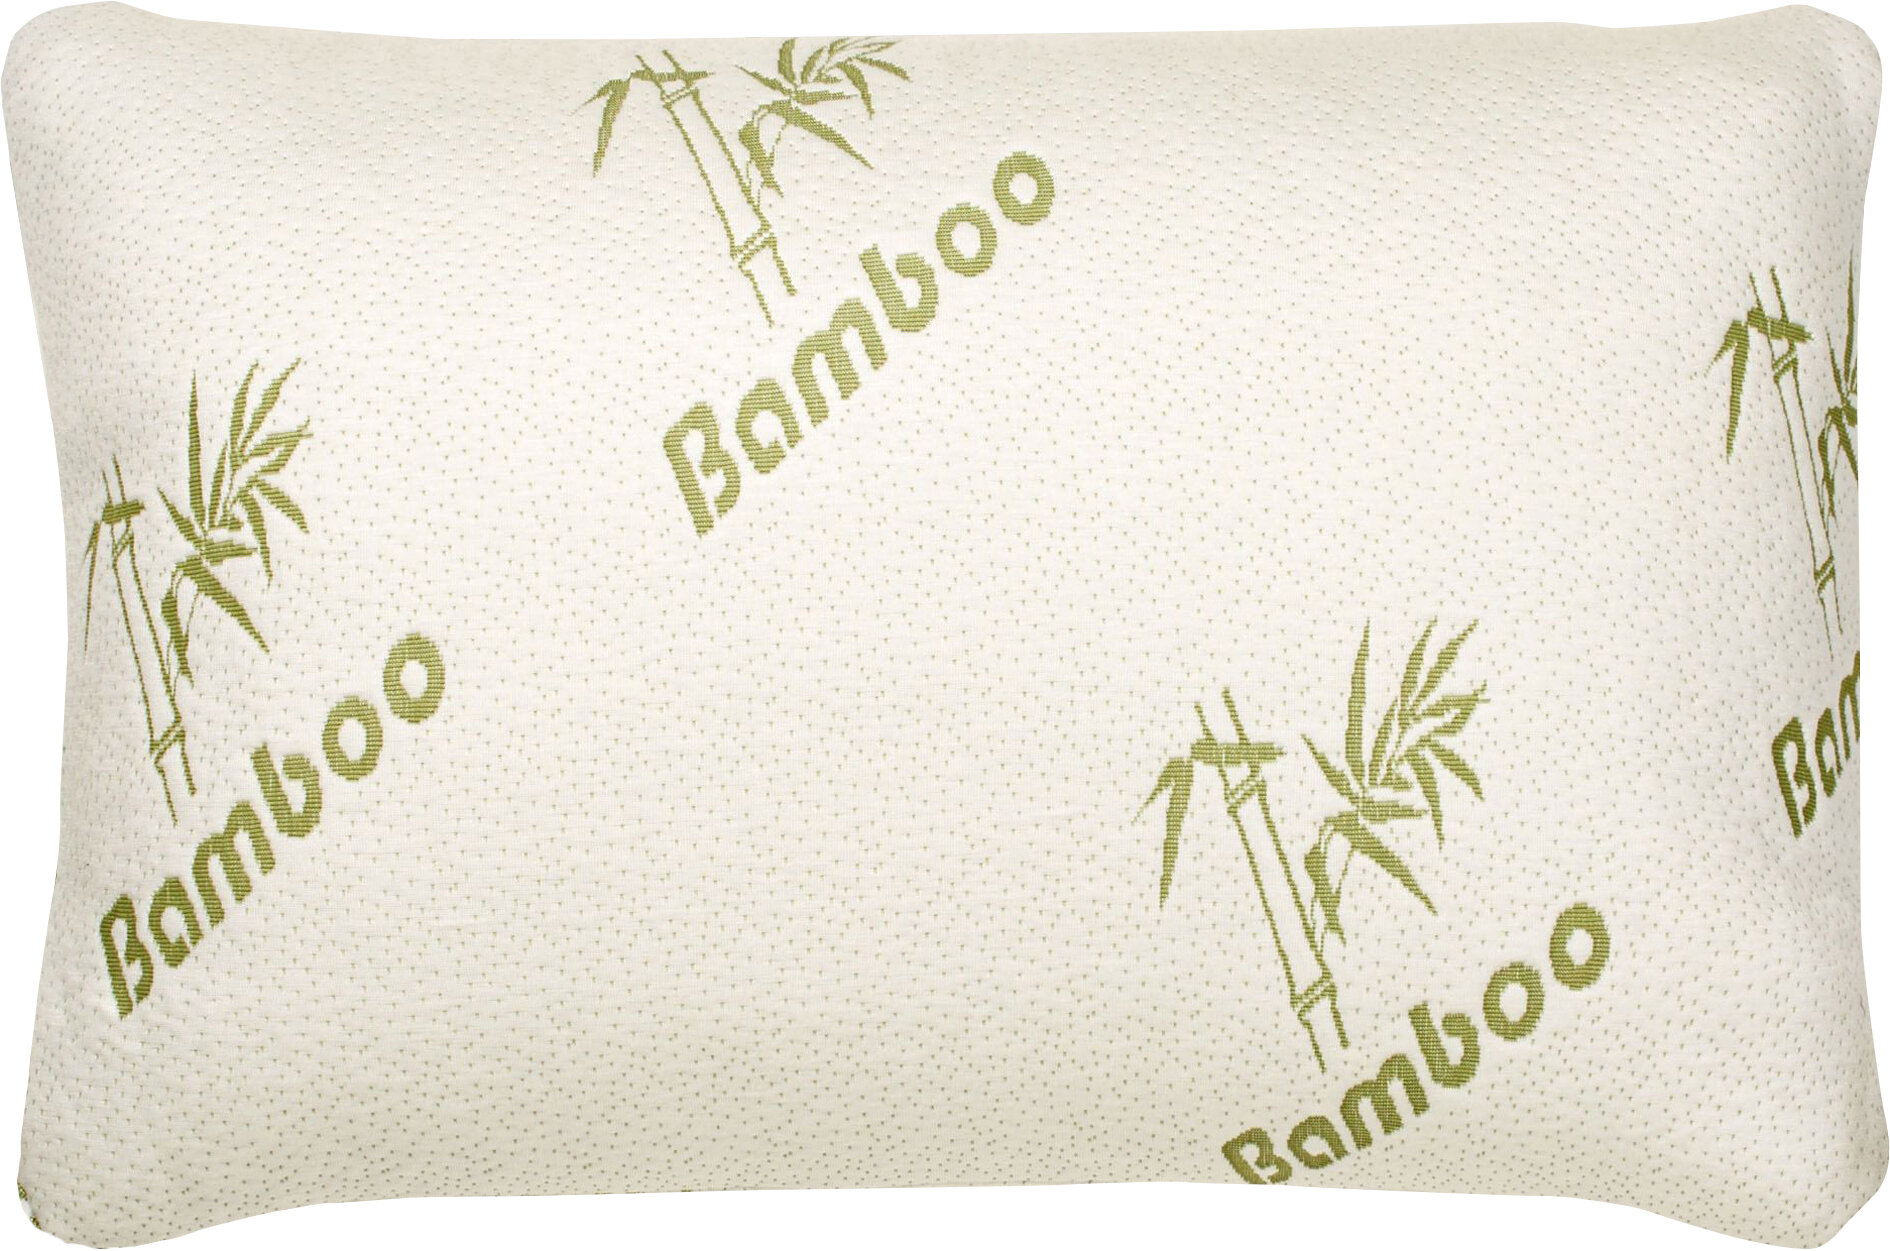 brand new ba3d5 fab98 Hypoallergenic Rayon from Bamboo Memory Foam Pillow